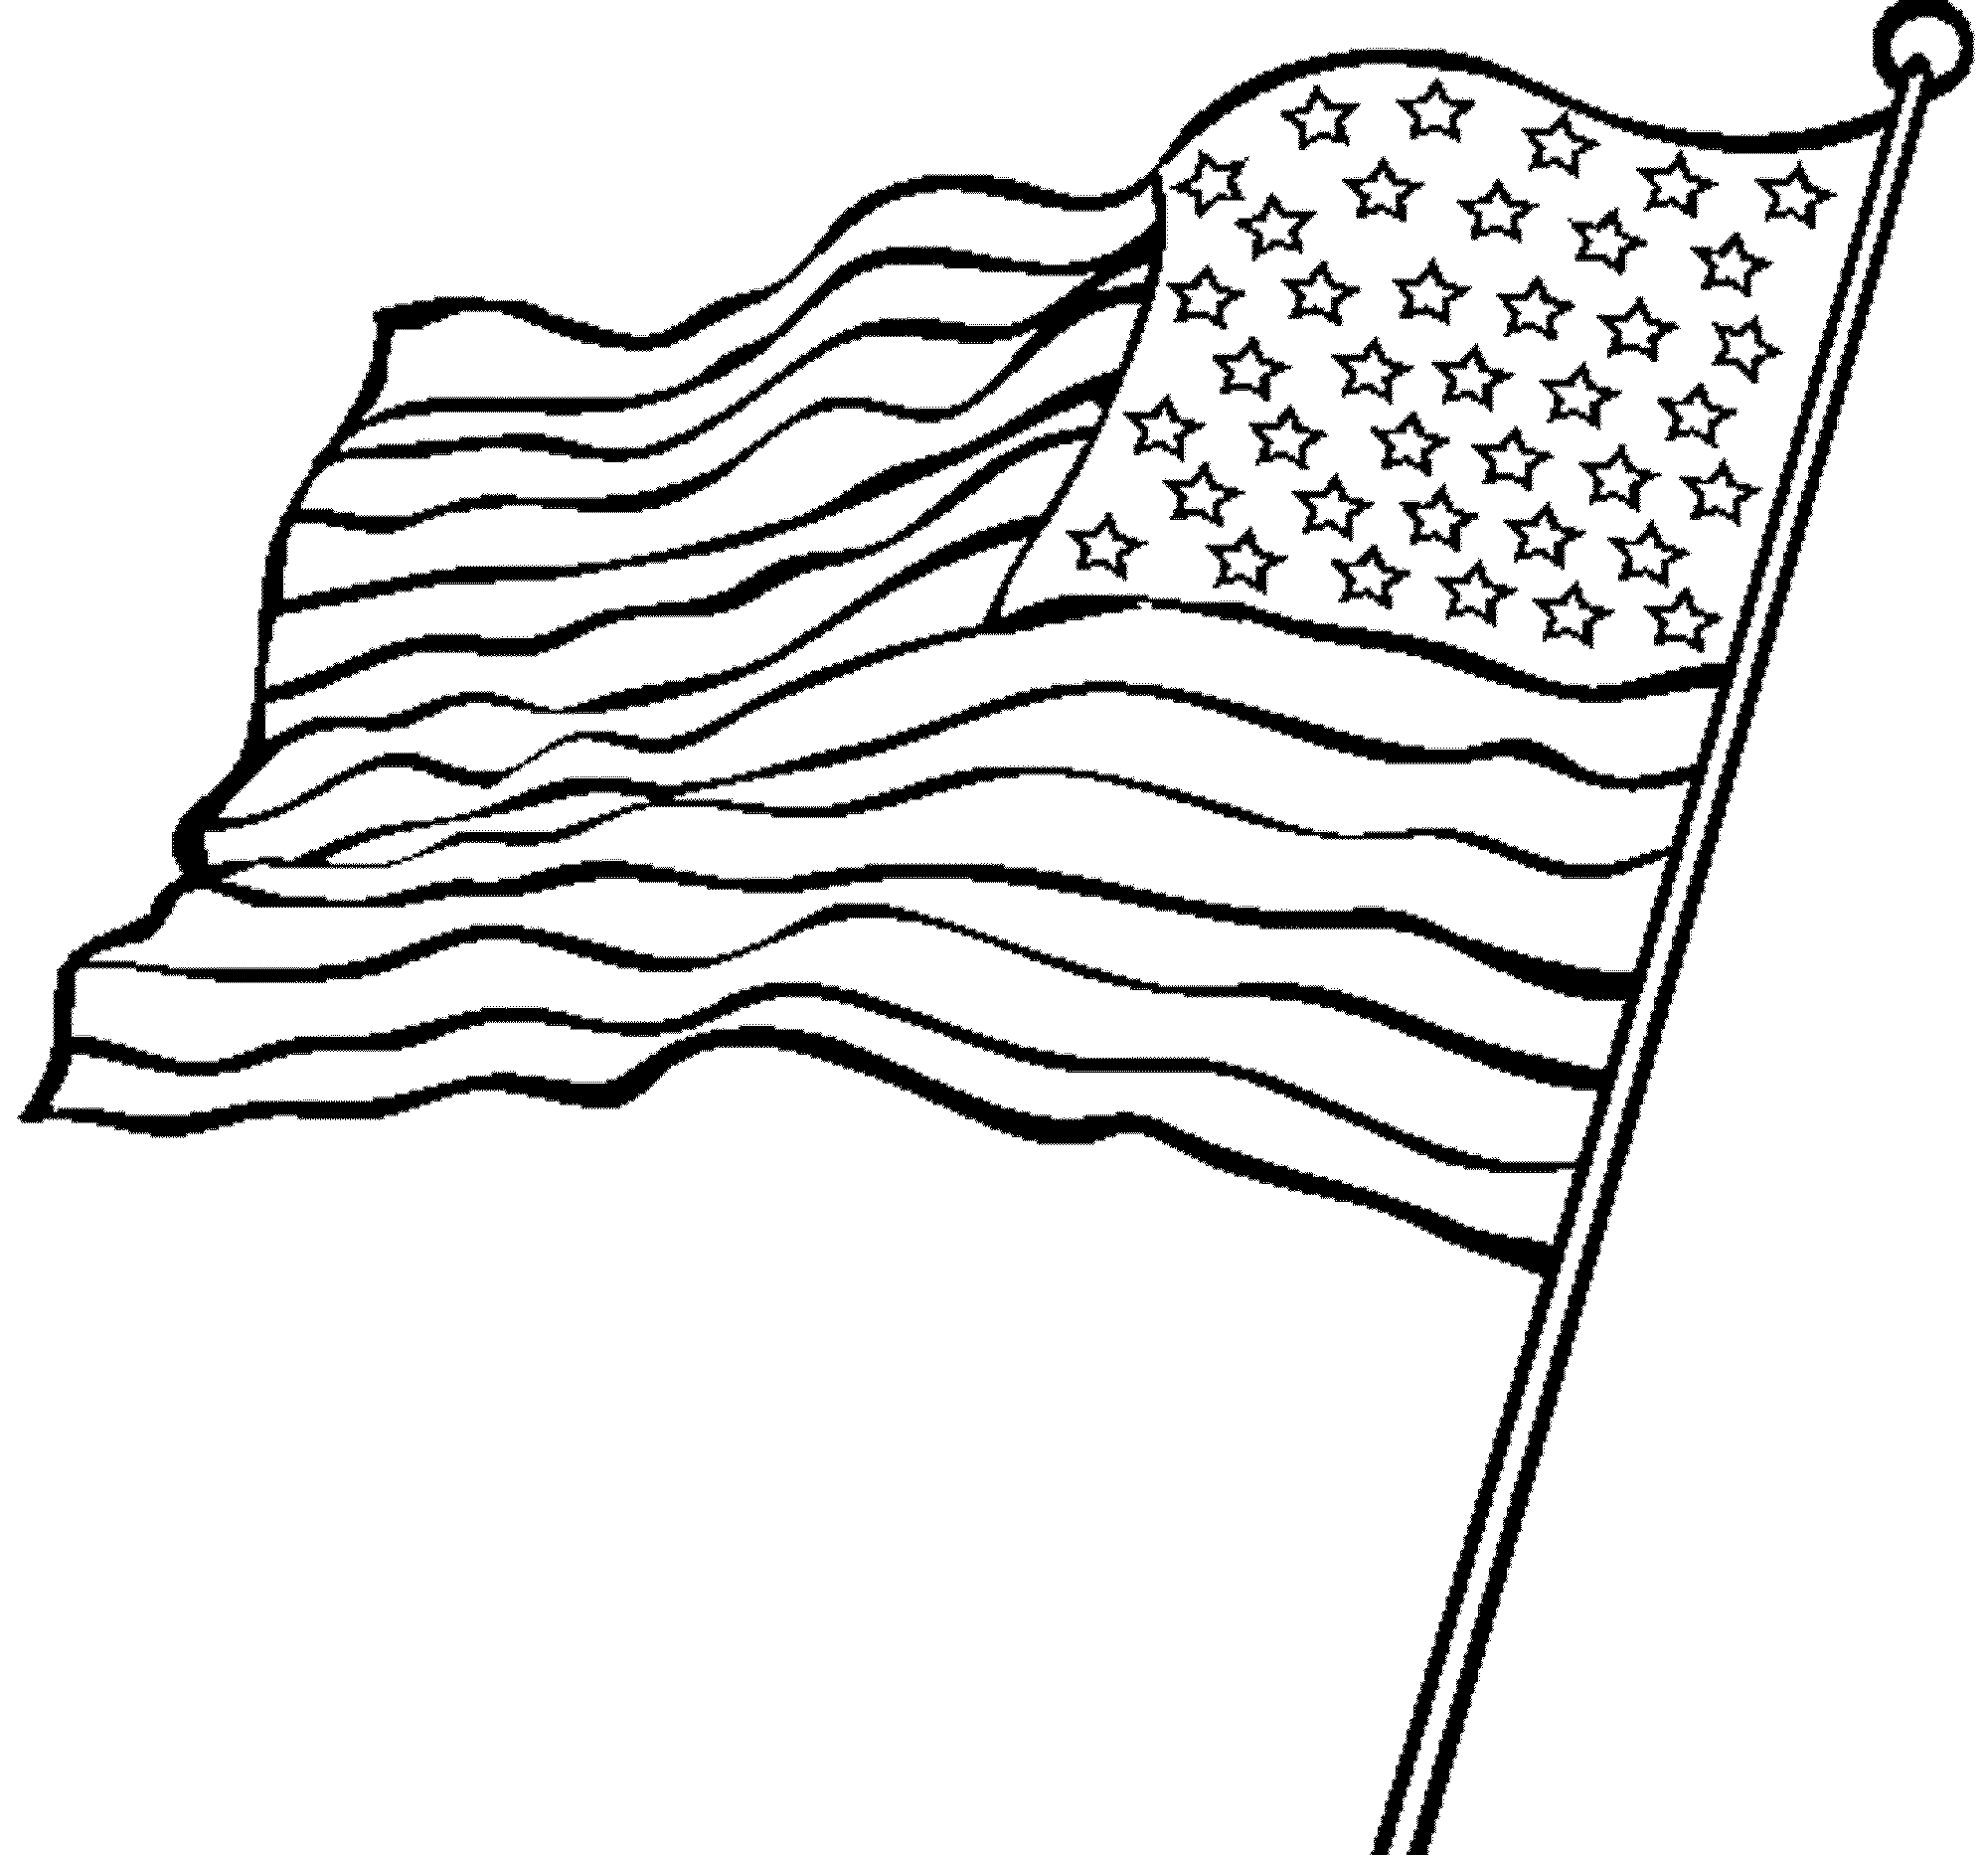 american flag to color american flag coloring page for the love of the country flag to american color